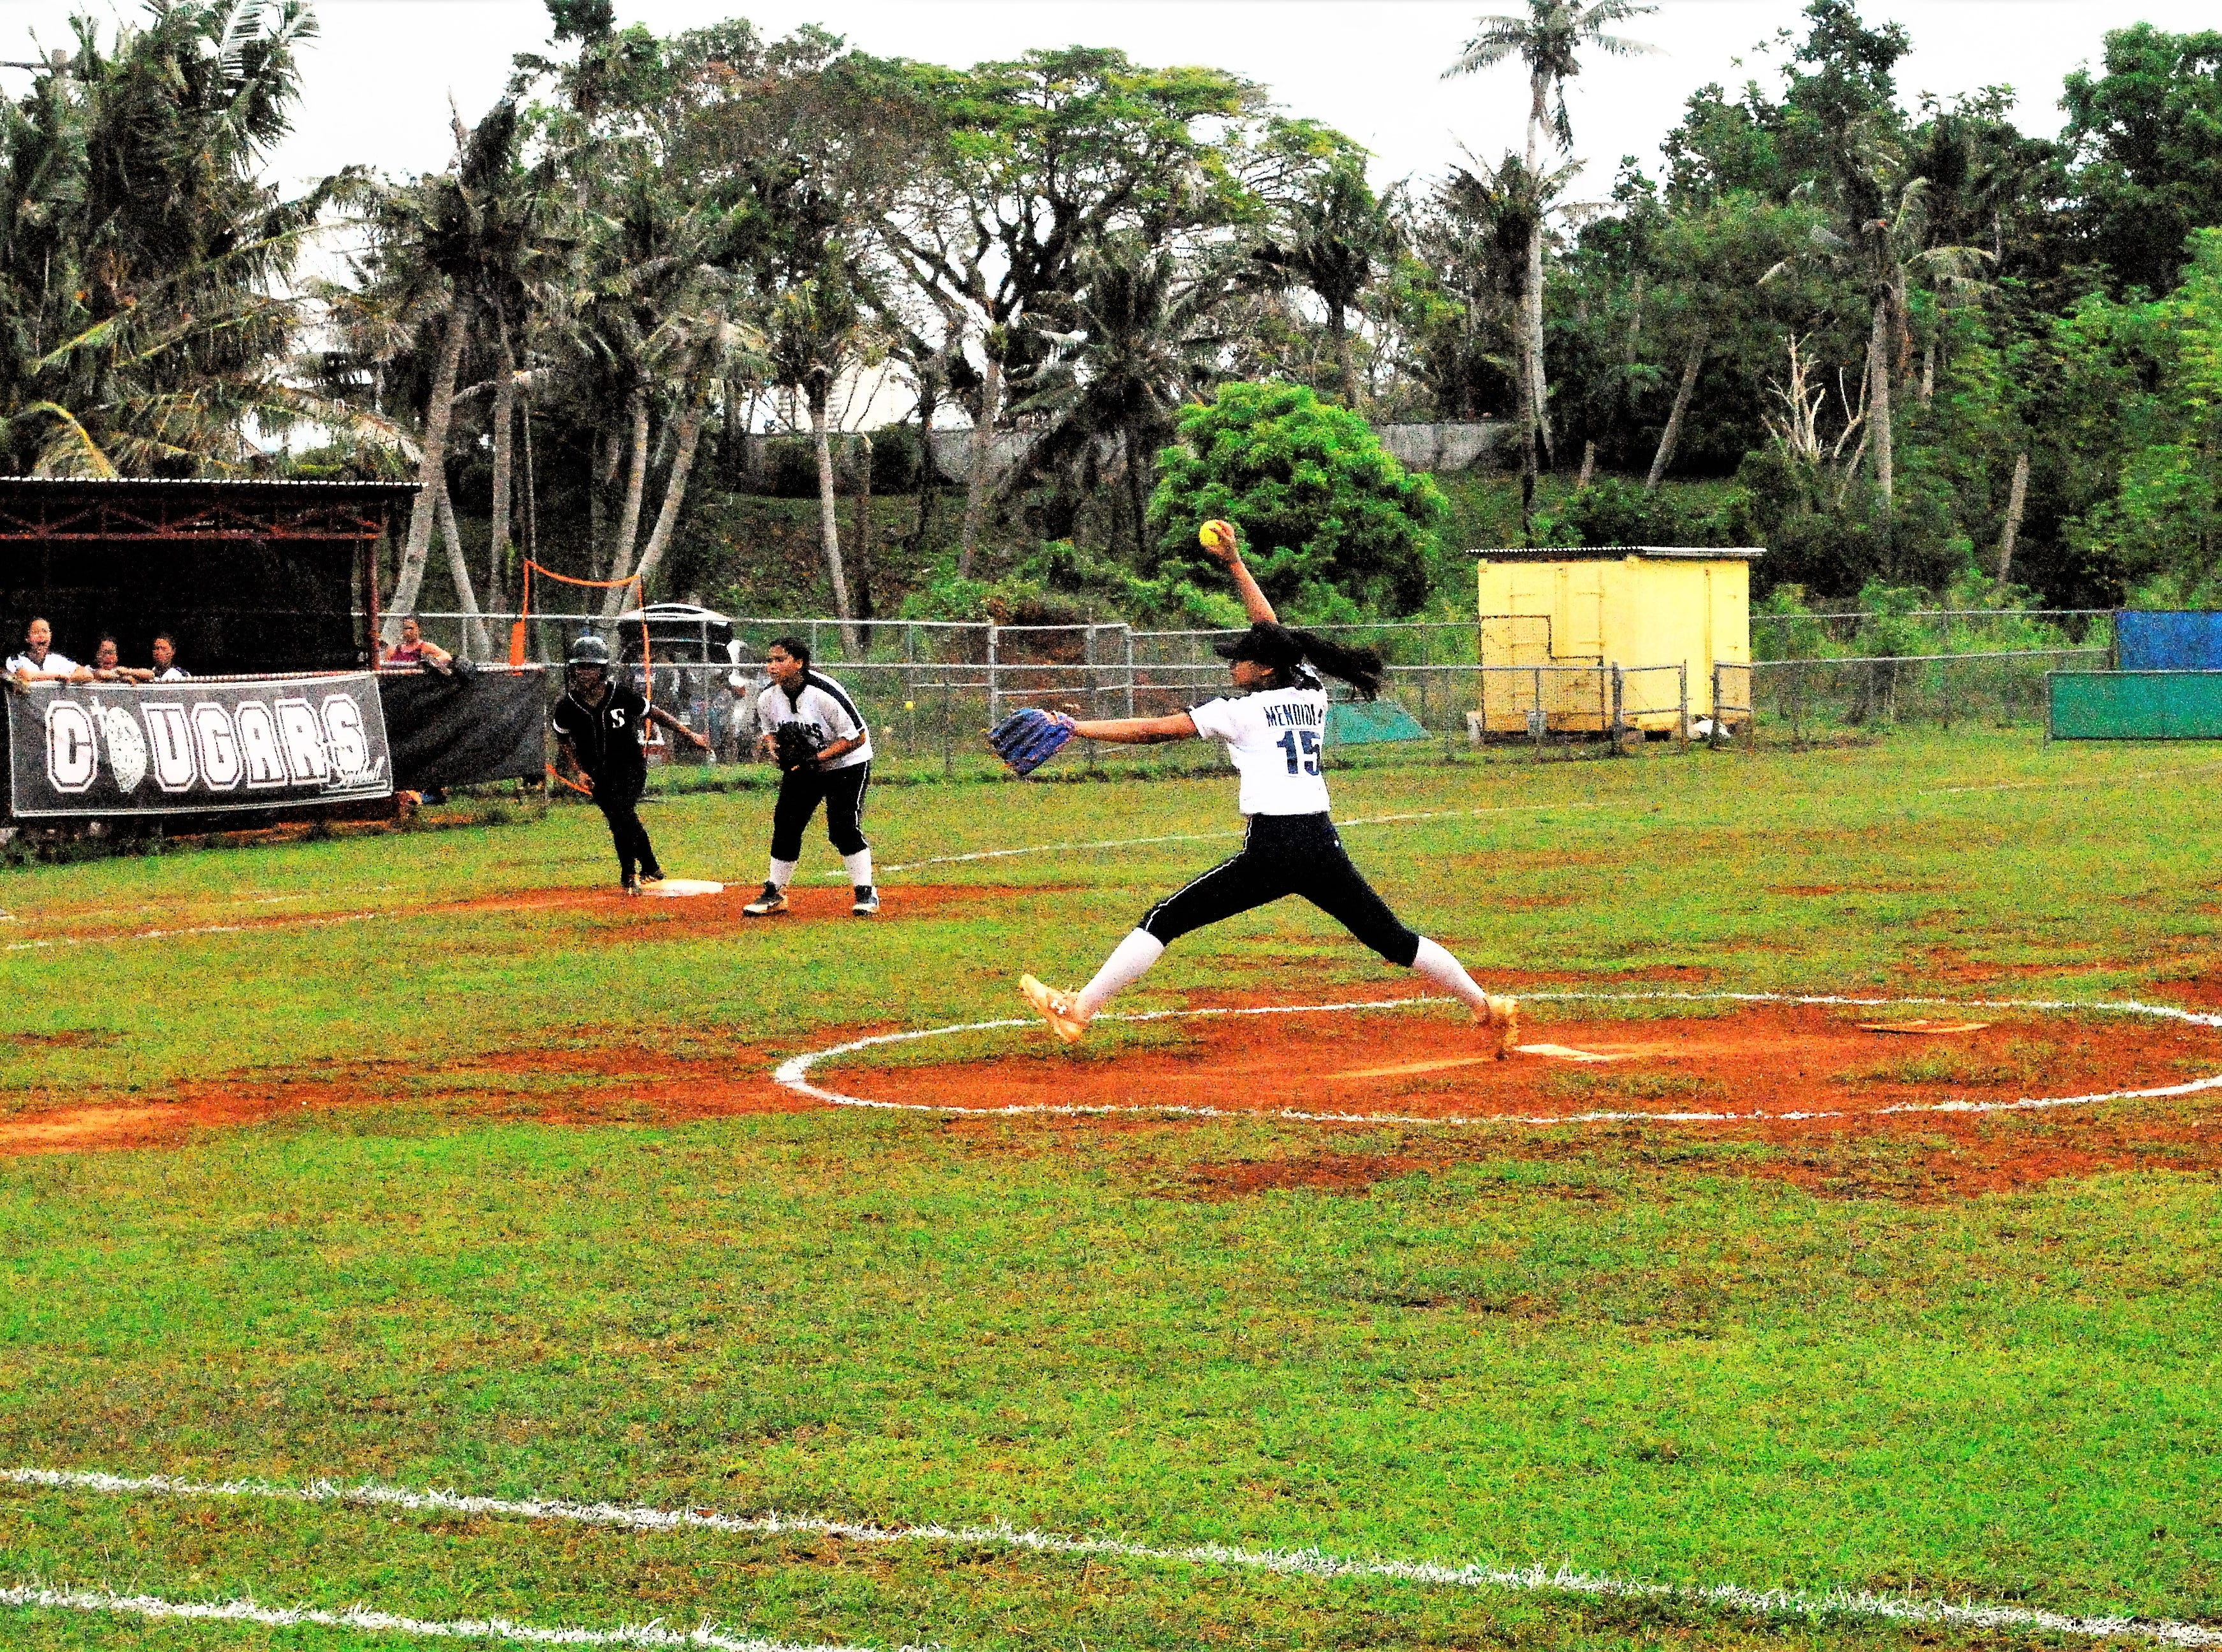 Academy pitcher Ashley Mendiola lets one loose against the Simon Sanchez Sharks during their IIAAG High School Girls Softball game on Saturday, Feb. 2 at Tai Field in Mangilao. Academy won 9-8.